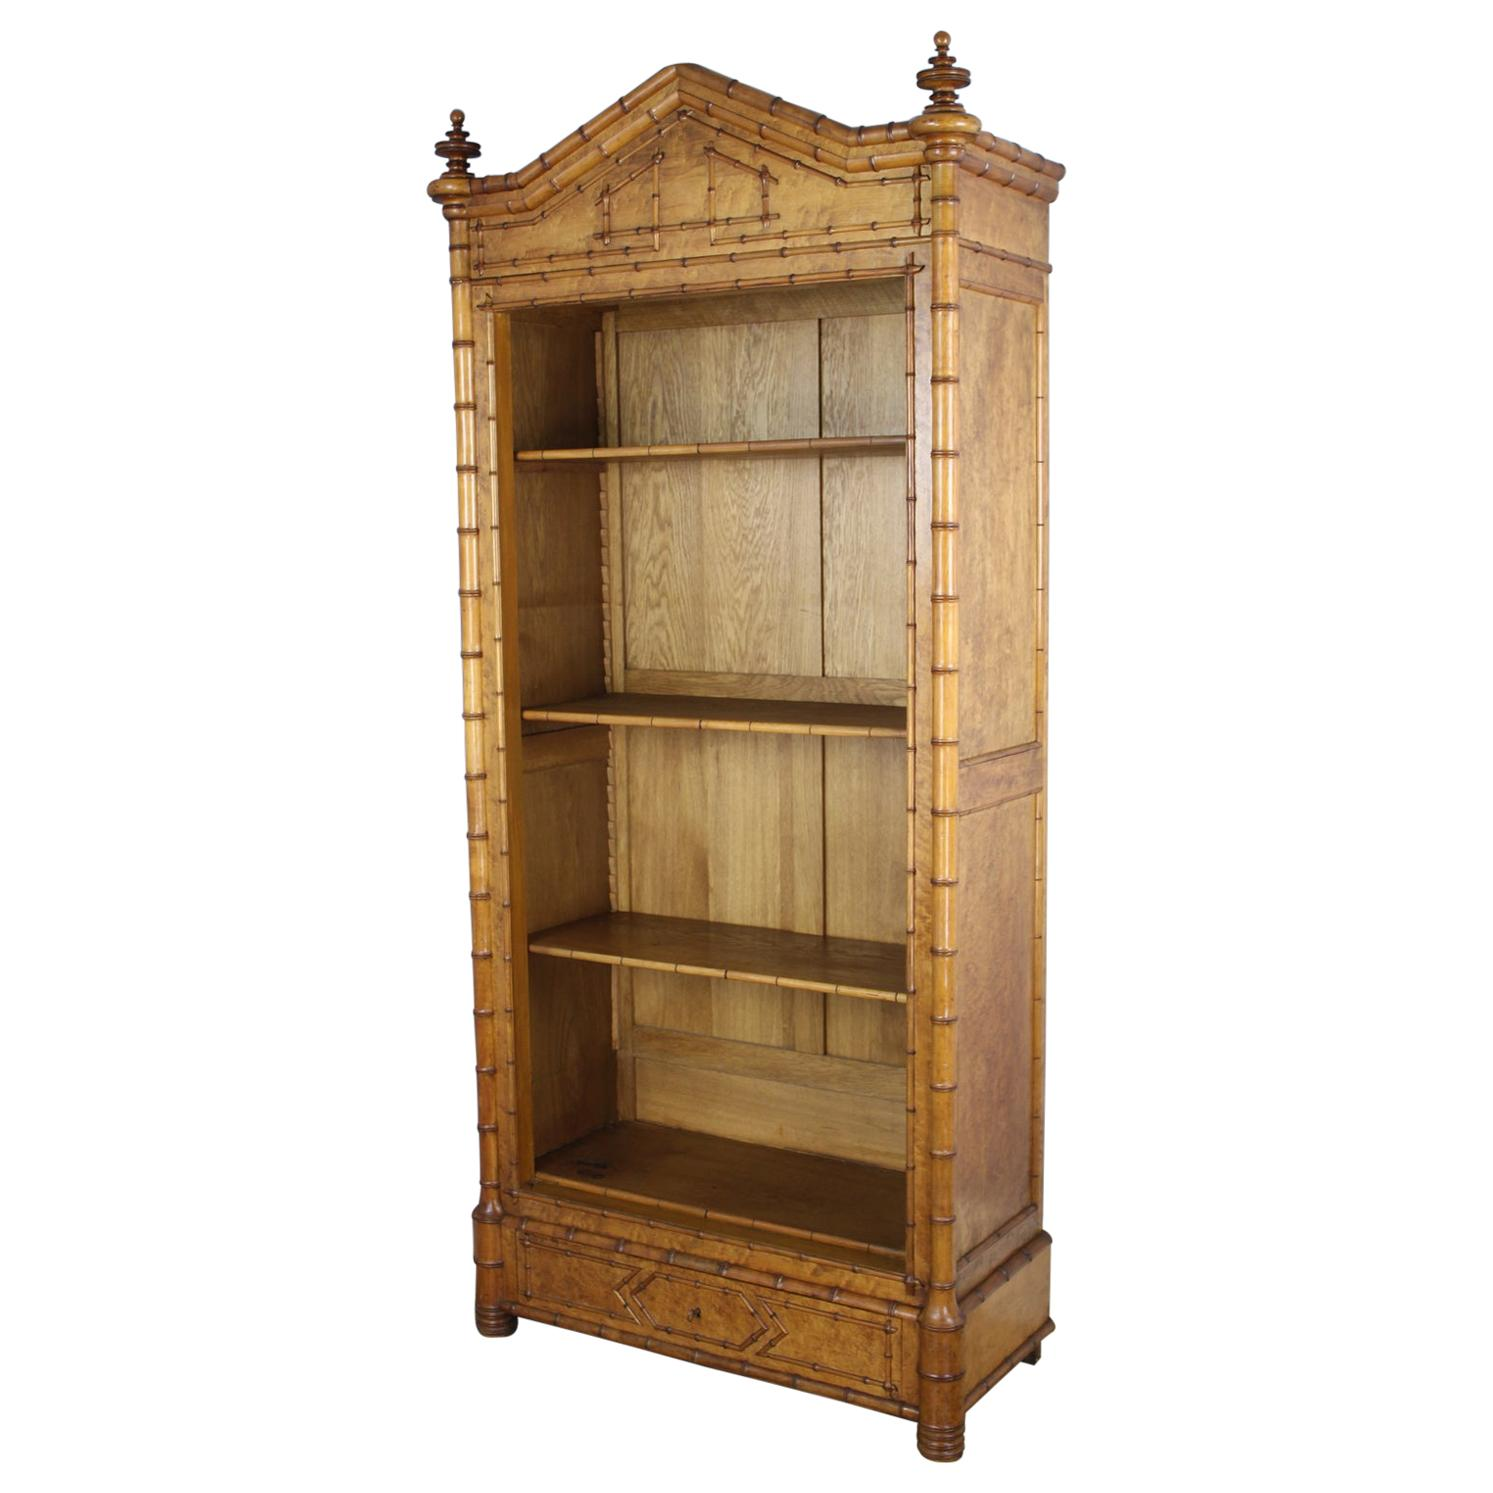 Faux Bamboo Open Bookcase with Bird's Eye Maple Panels